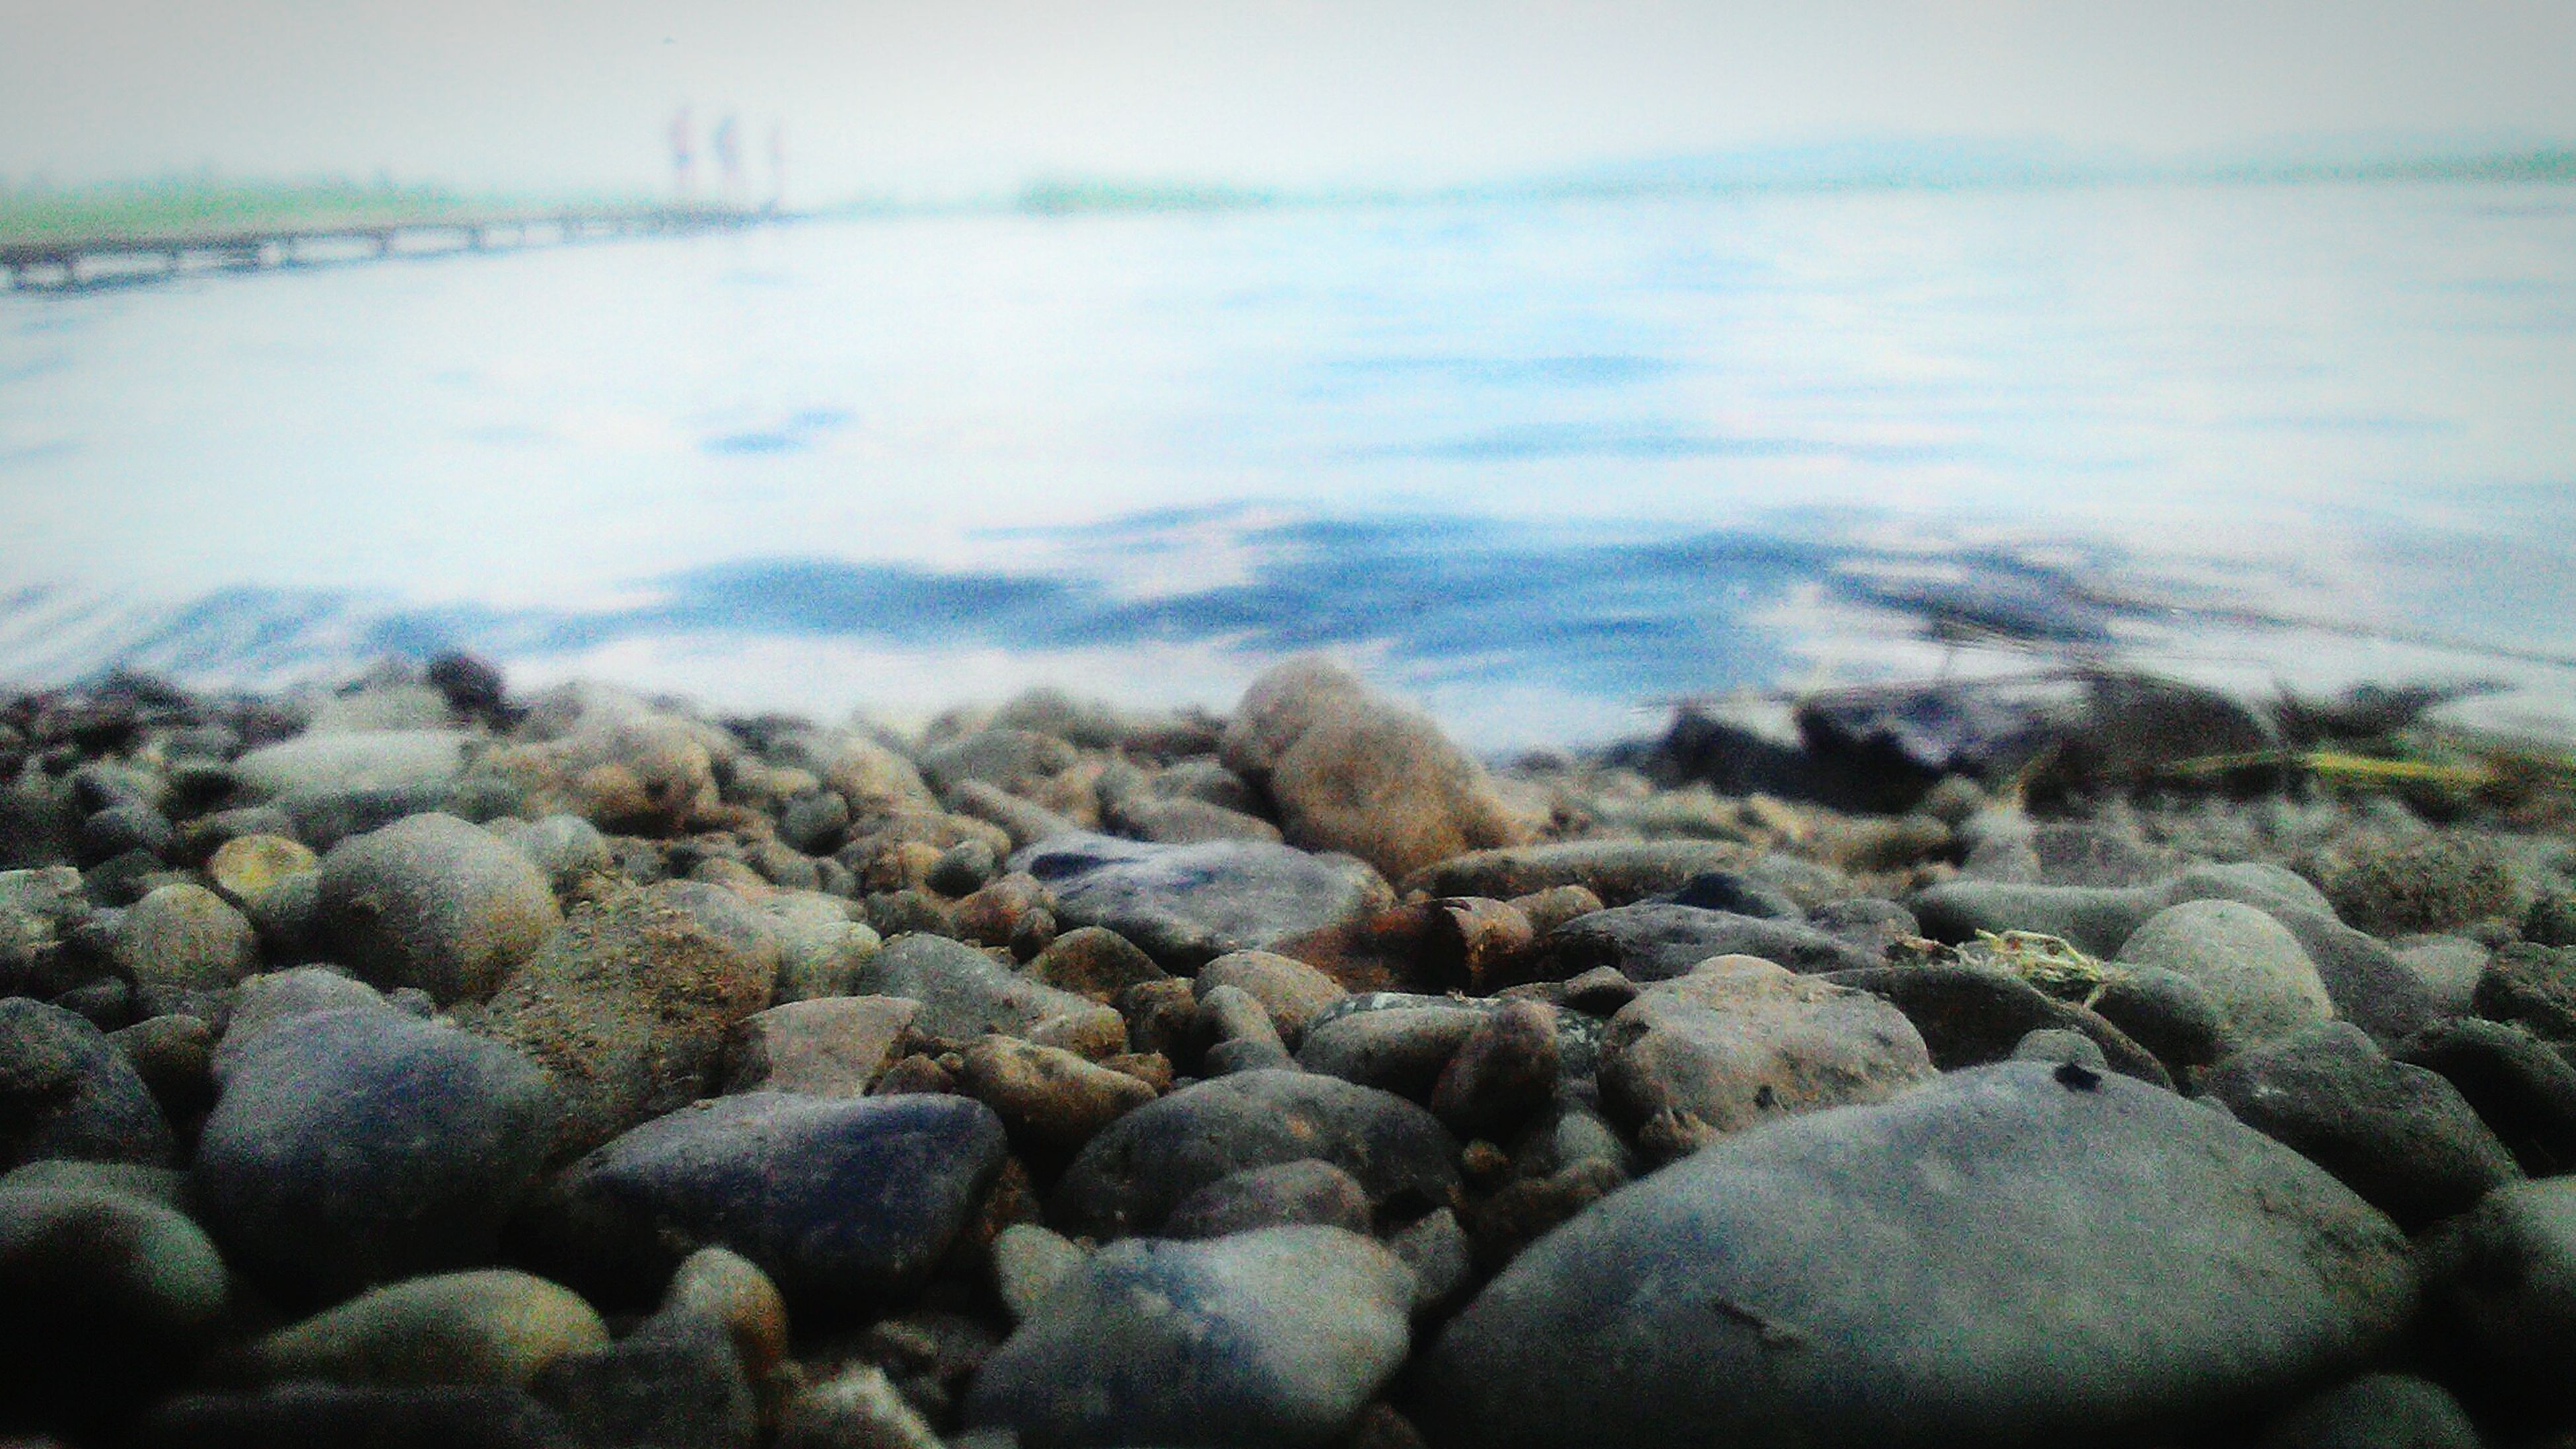 water, pebble, stone - object, shore, nature, rock - object, tranquility, surface level, beauty in nature, tranquil scene, stone, scenics, day, rock, outdoors, sky, no people, idyllic, selective focus, non-urban scene, abundance, remote, non urban scene, close-up, pebble beach